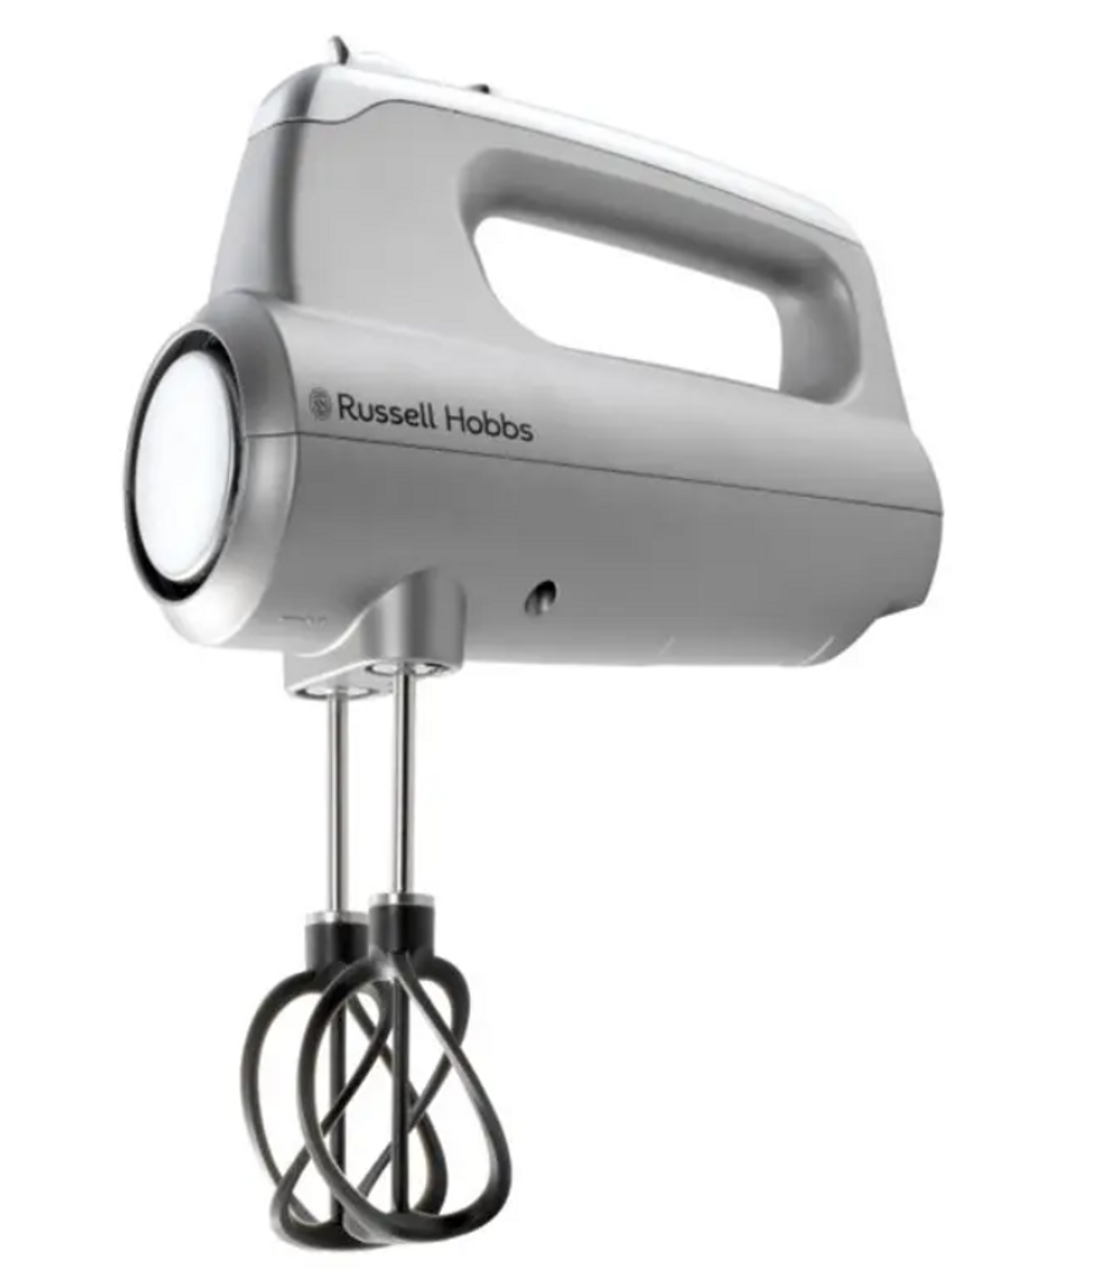 Russell Hobbs RHMX350 Helix 5 Speed Hand Mixer with Snap On Case - HURRY LAST 6!